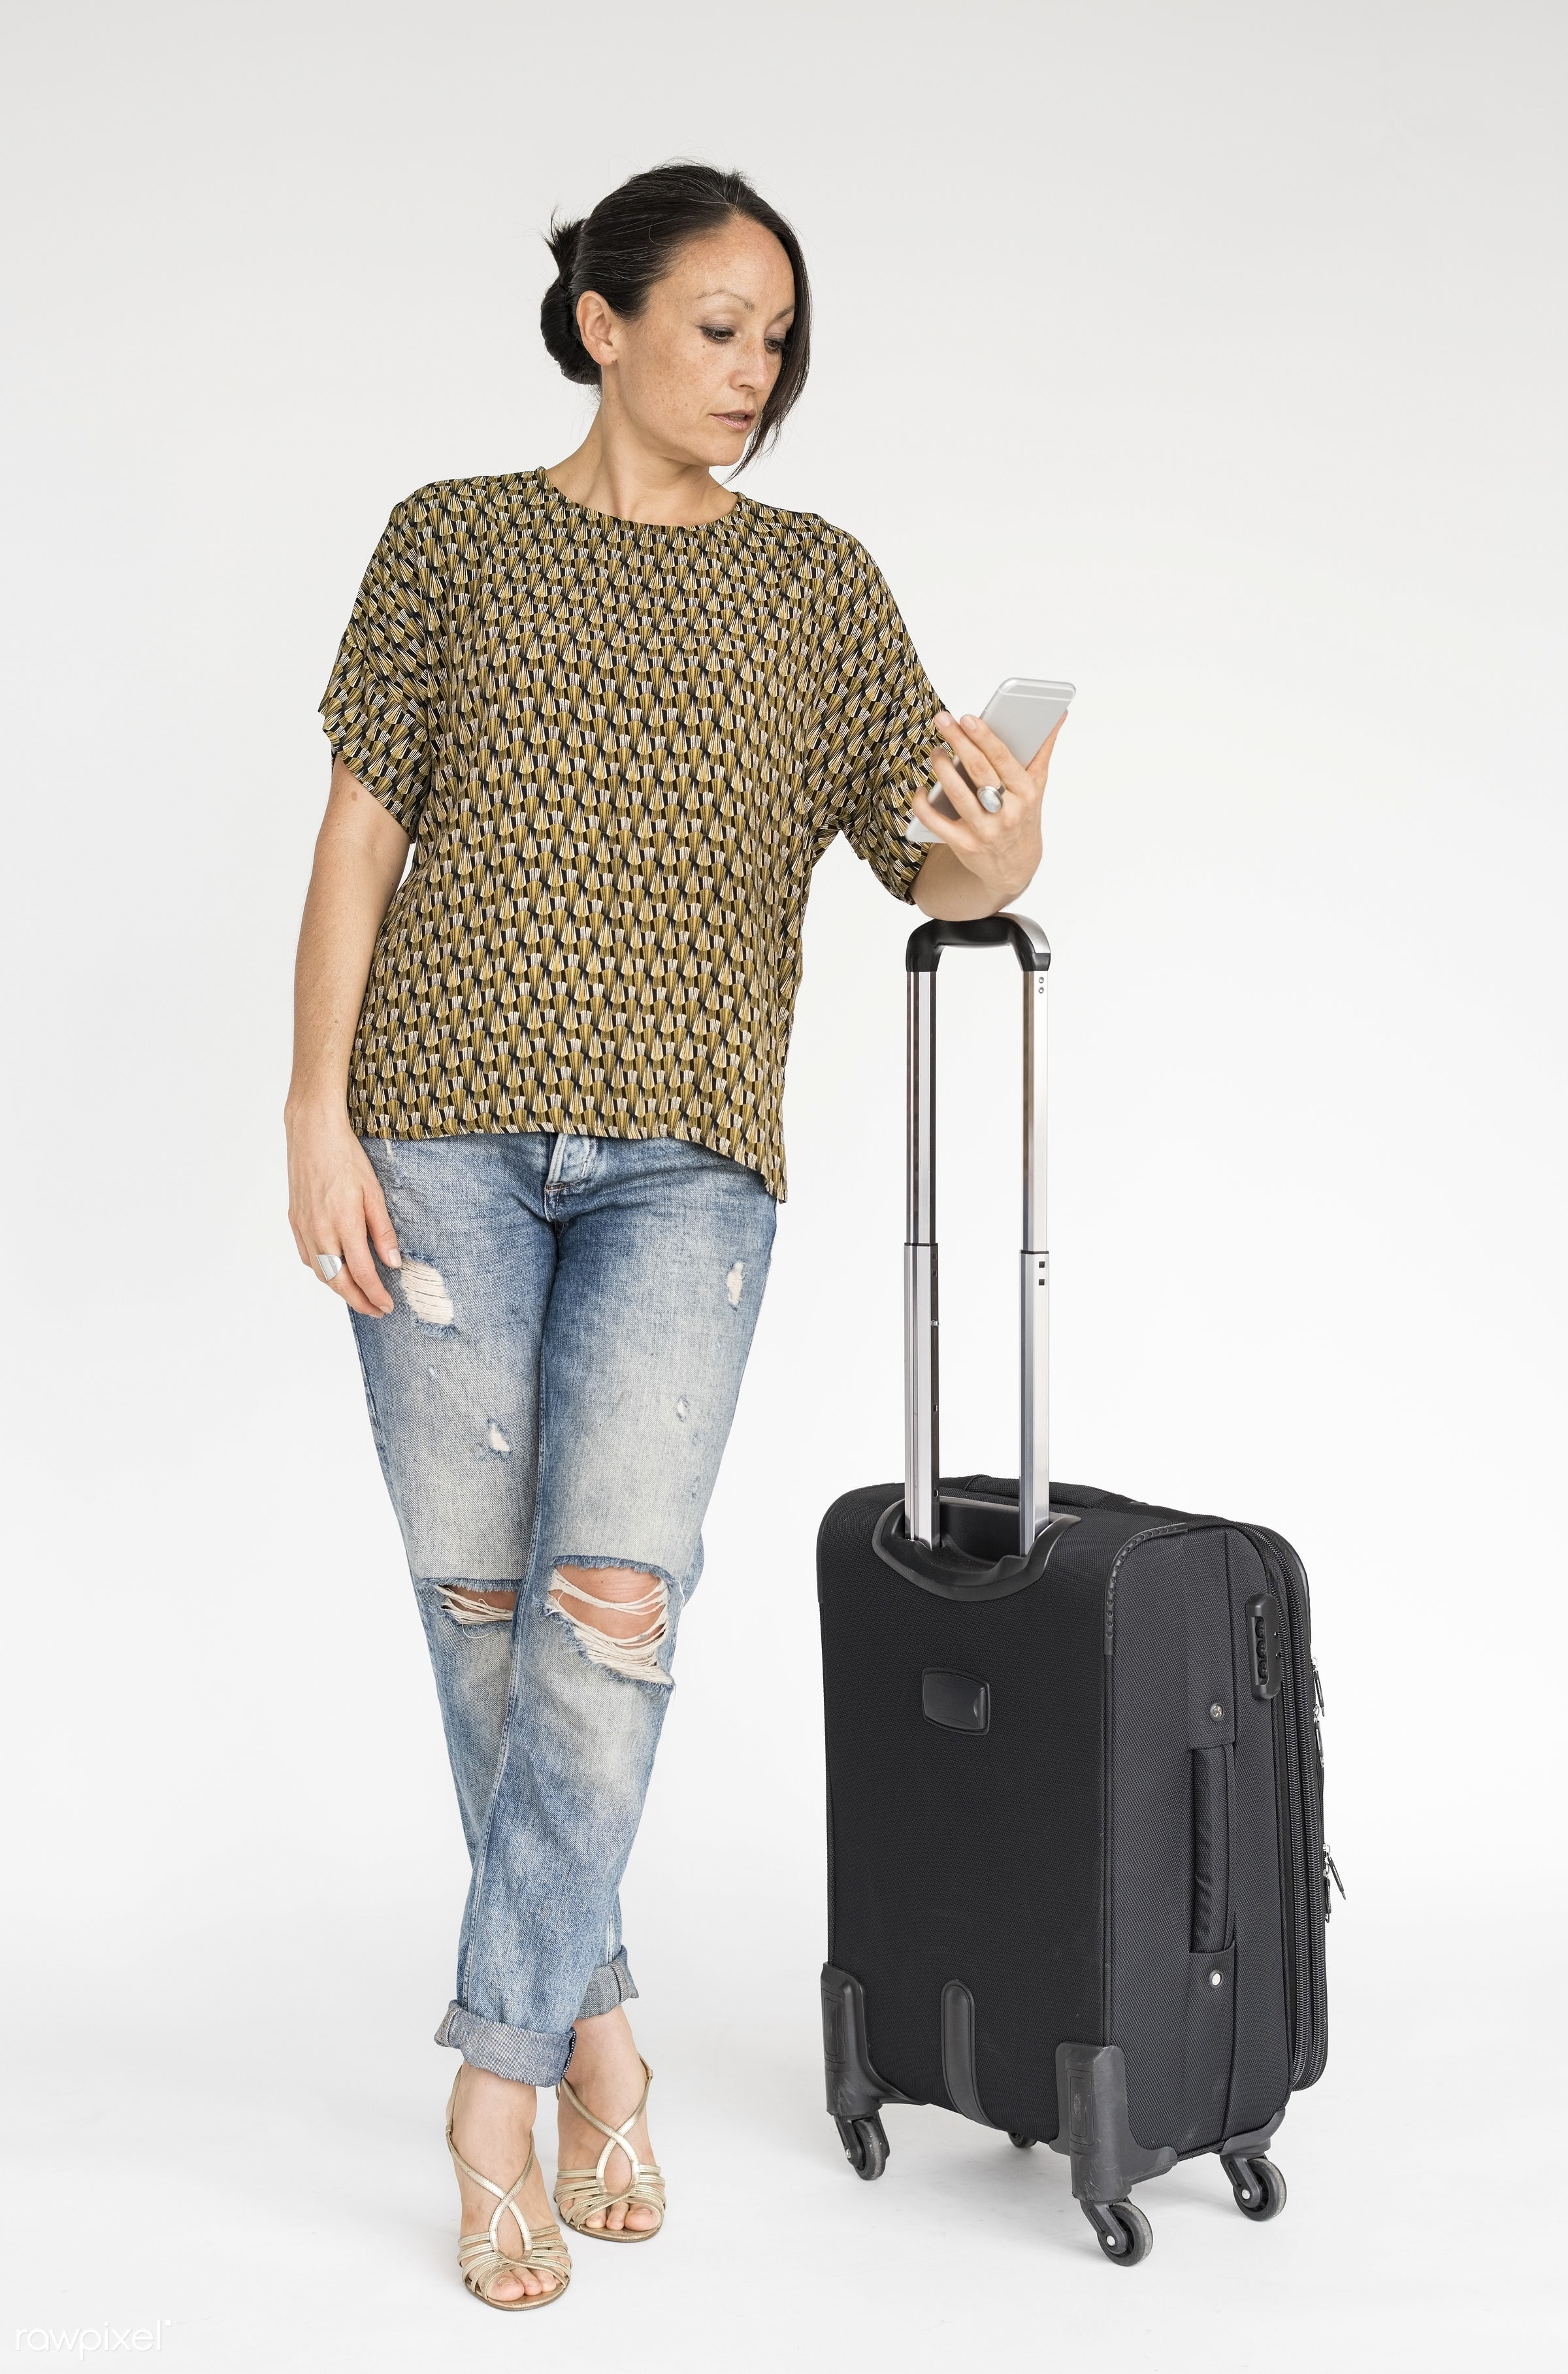 expression, studio, using, person, phone, technology, holding, luggage, travel, people, caucasian, woman, serious, isolated...